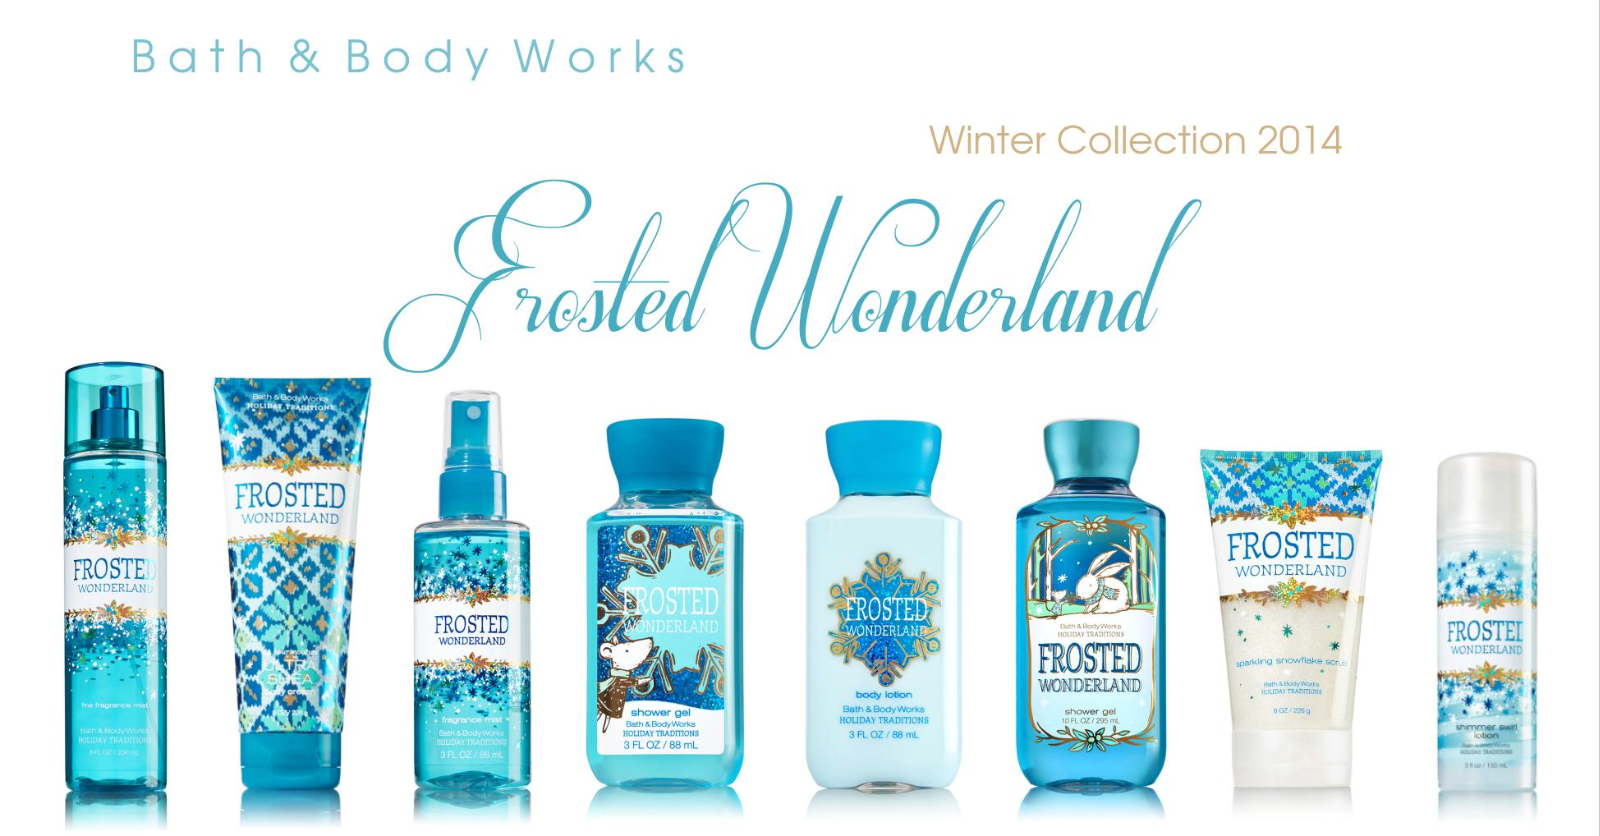 bbw frosted wonderland - Google Search